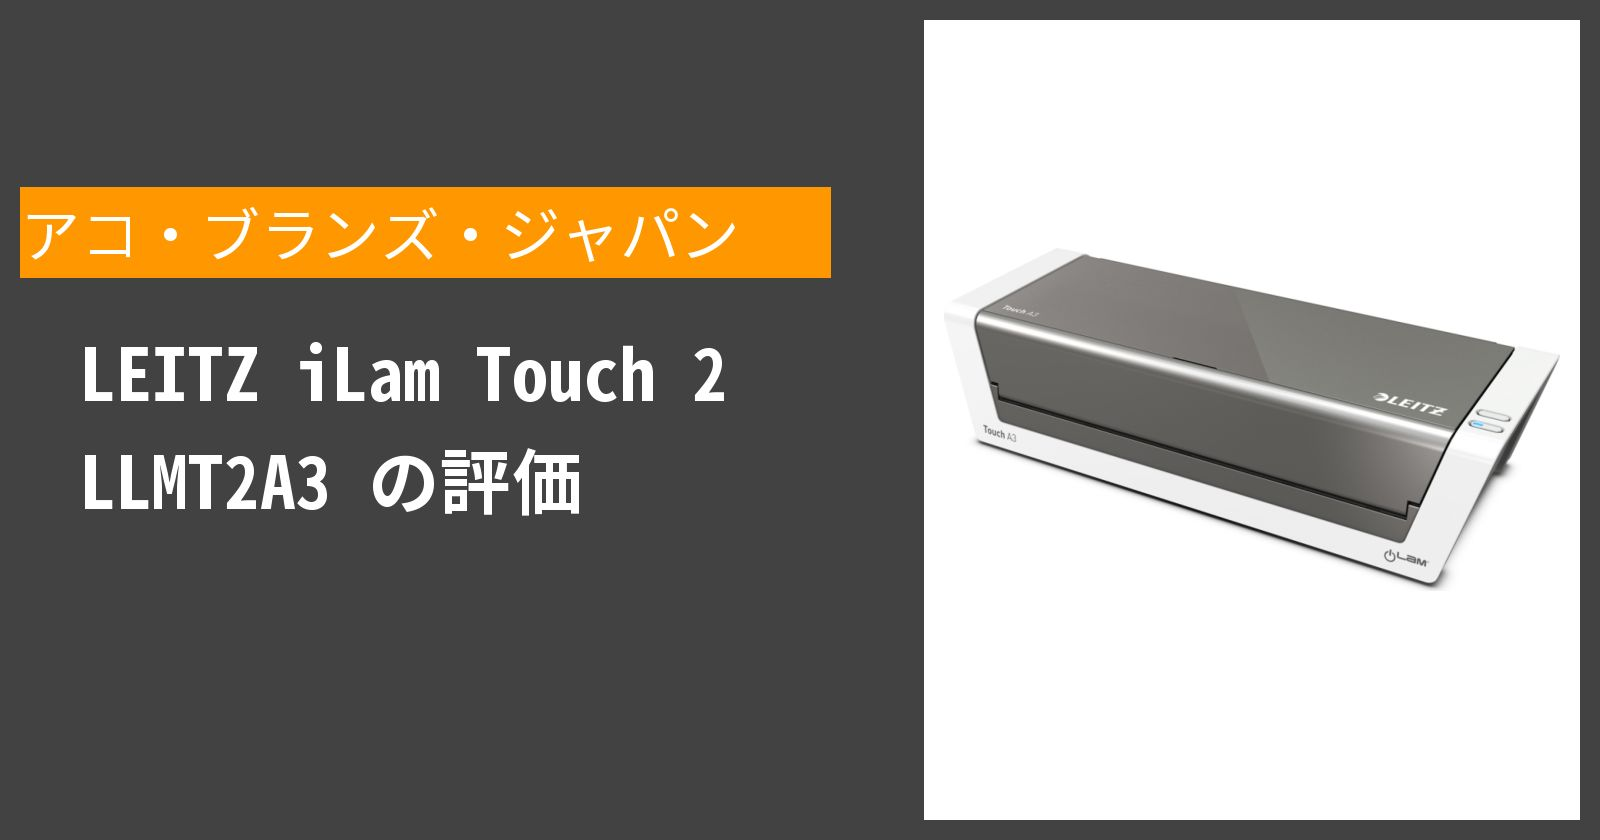 LEITZ iLam Touch 2 LLMT2A3を徹底評価